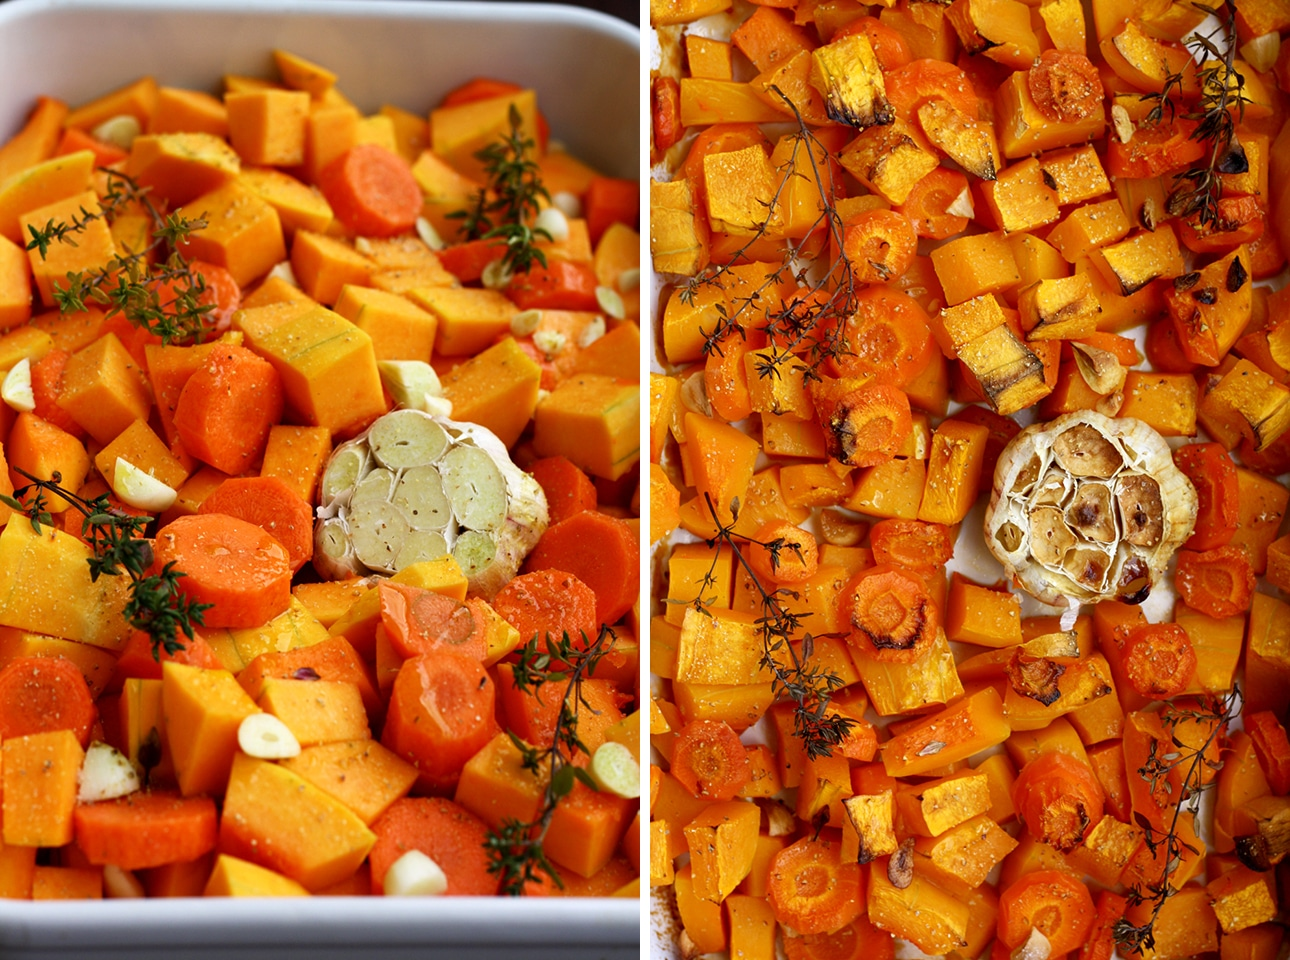 Roasted Butternut Squash and Garlic Before and After